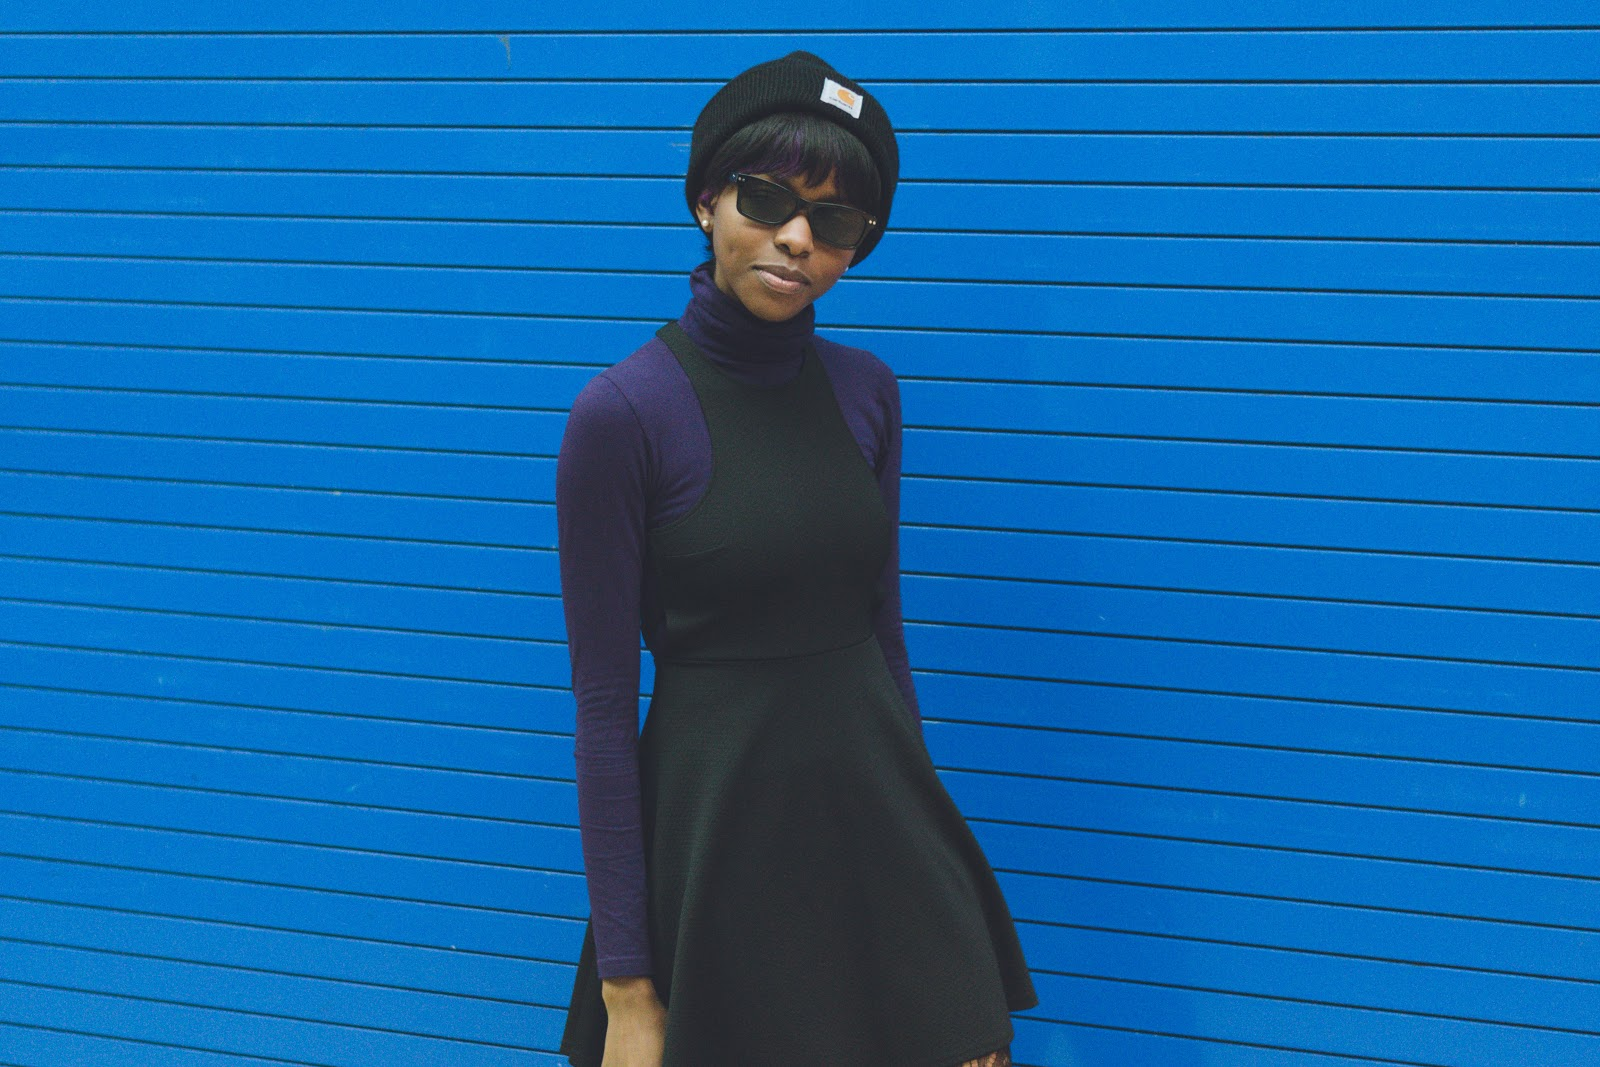 Carhartt Beanie, ASOS Sunglasses, American Apparel Turtleneck, Oh My Love London Dress, Topshop Blazer, Dr. Martens 1460 Boots